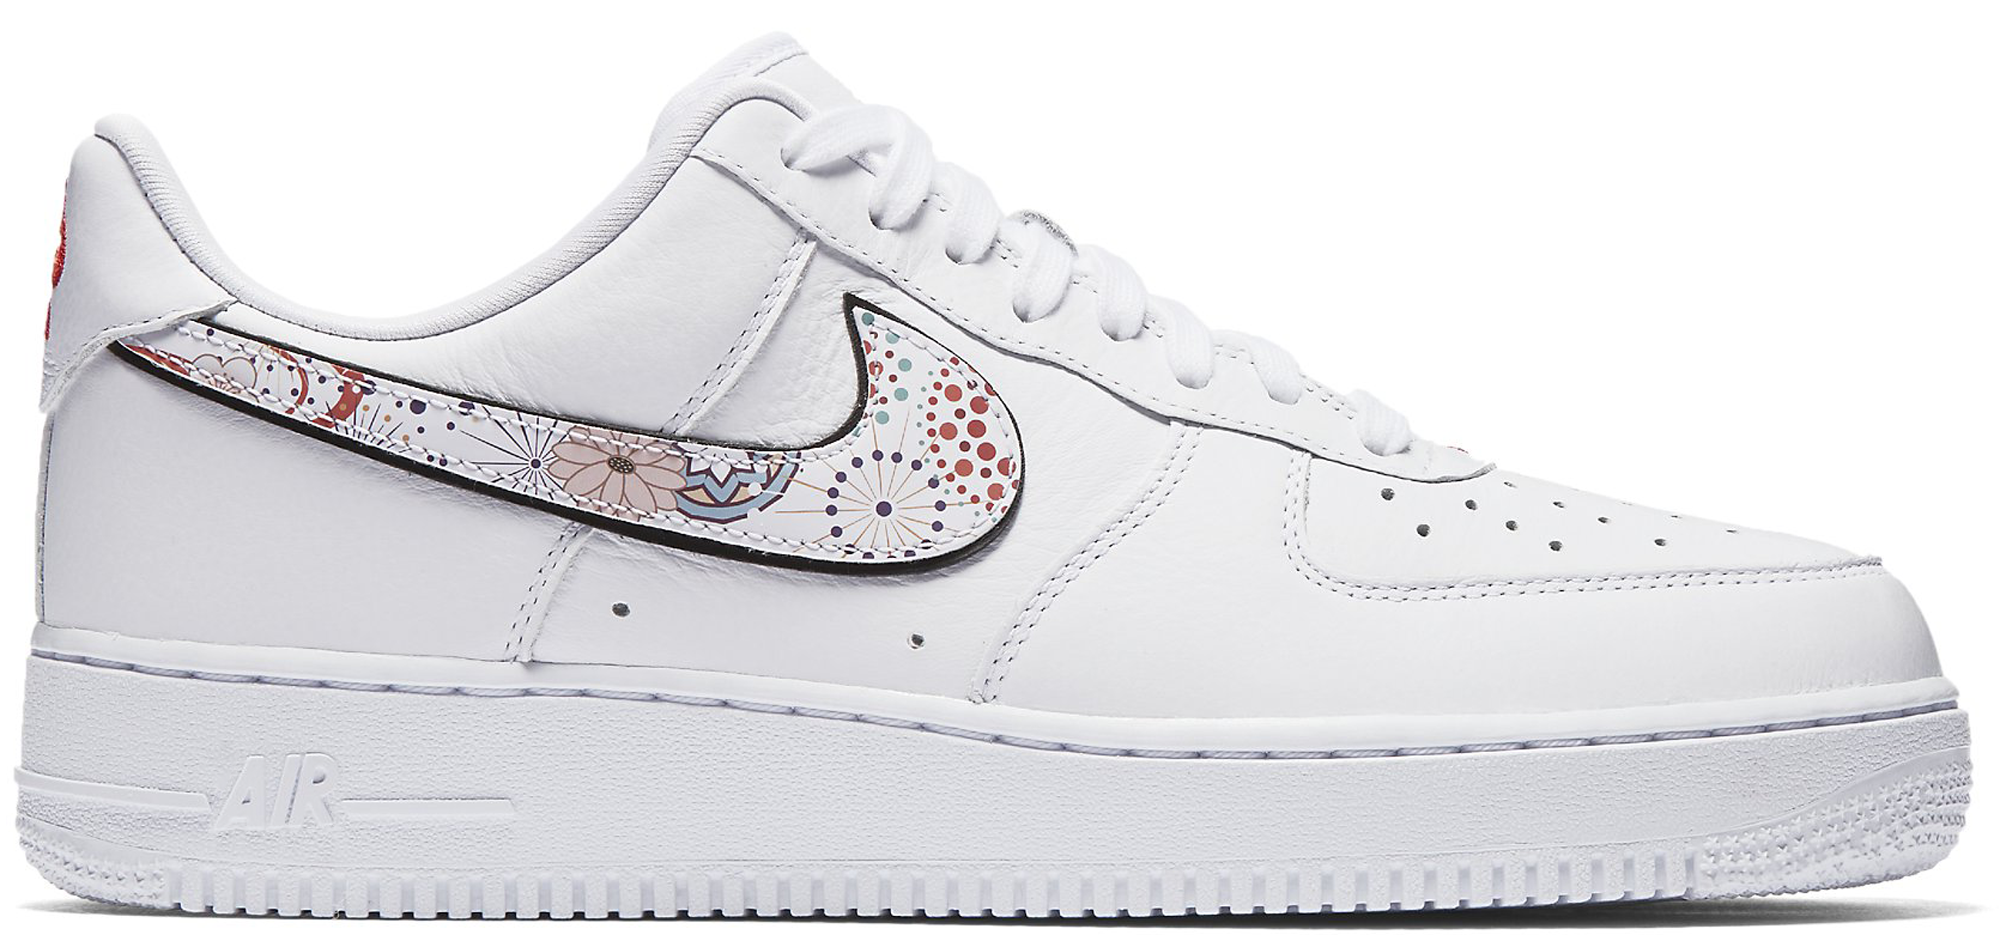 Nike Air Force 1 Low Lunar New Year